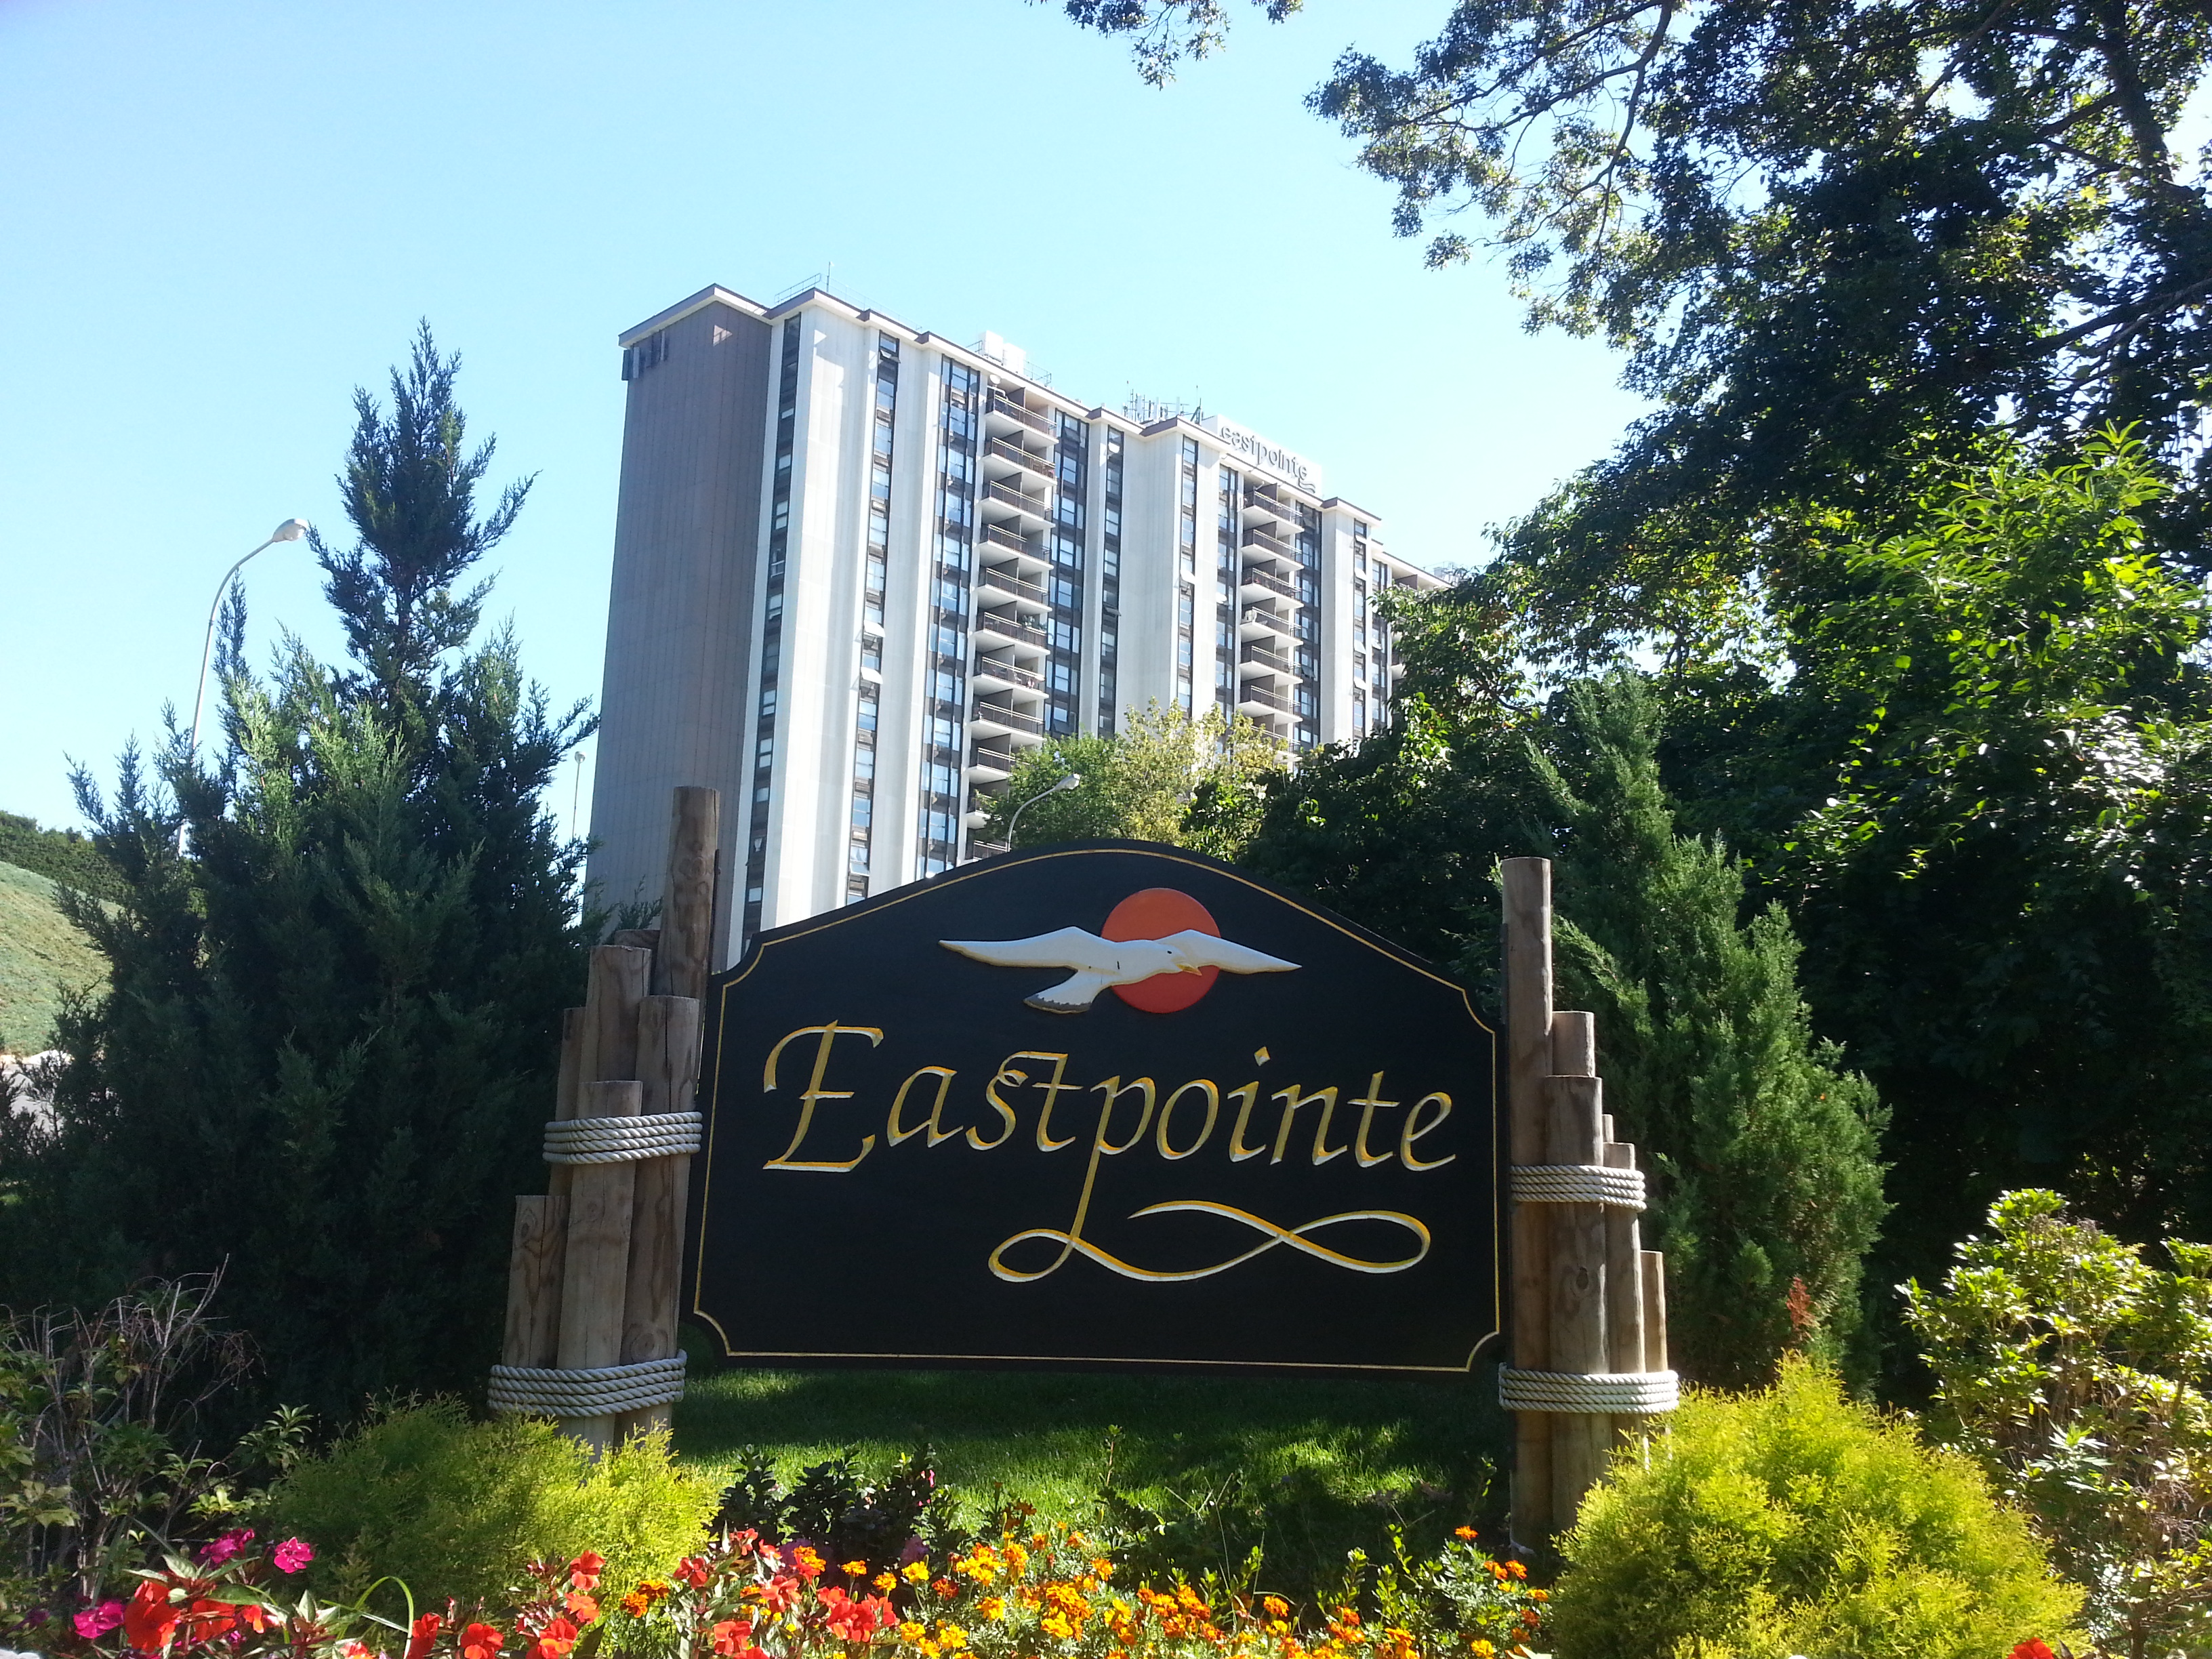 Eastpointe Condominium, located at 1 Scenic Dr., Highlands, NJ, overlooks Sandy Hook Bay and NYC..